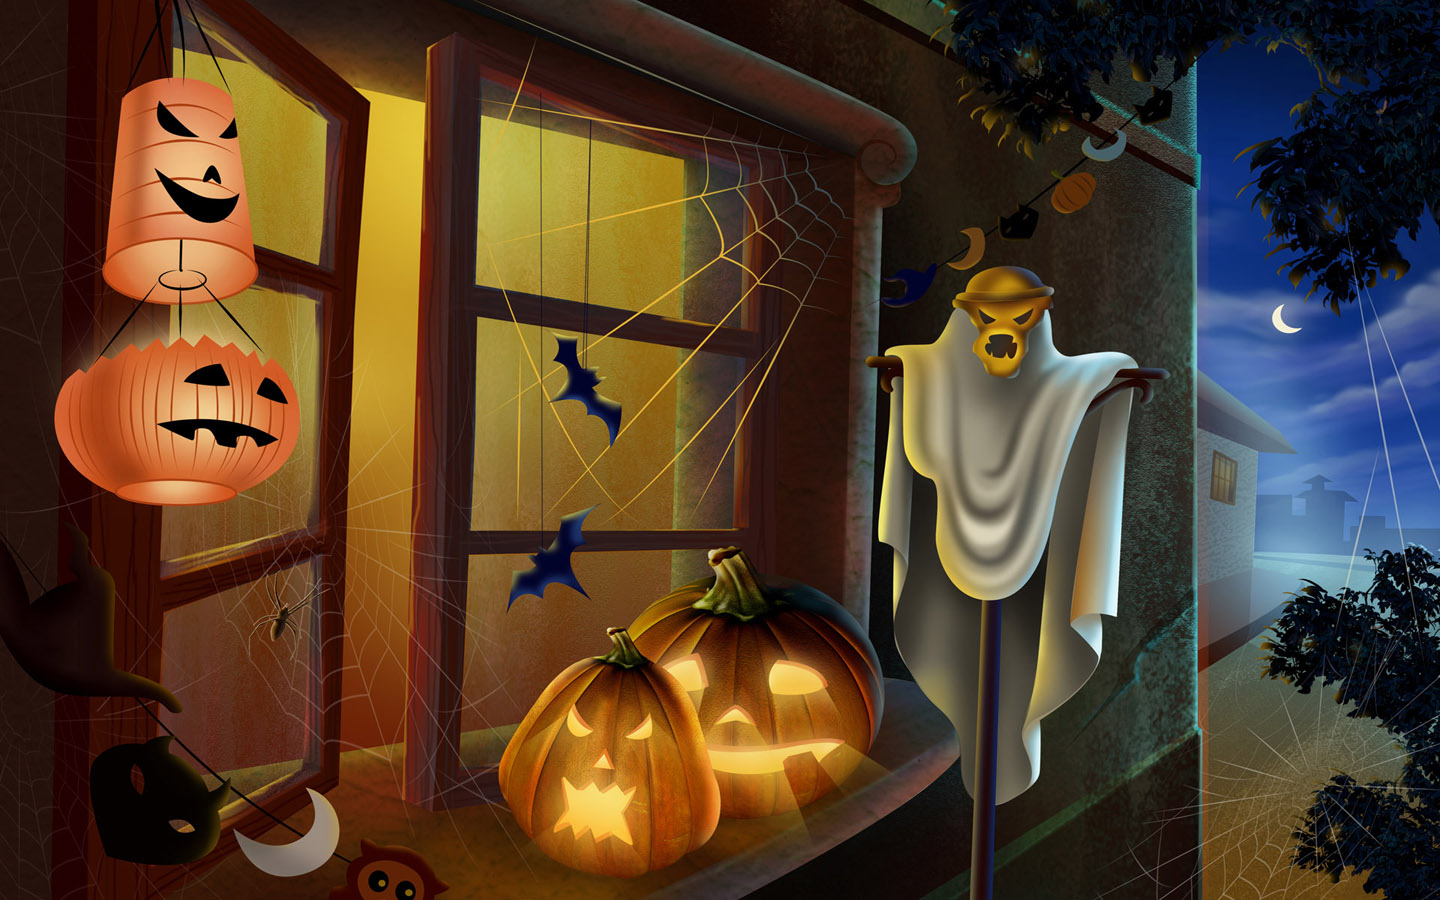 http://3.bp.blogspot.com/-x8HK1xpL0G8/UHbqhpFp3ZI/AAAAAAAAHRw/VH_x5p4bvoU/s1600/Halloween+Wallpaper+Background+001.jpg